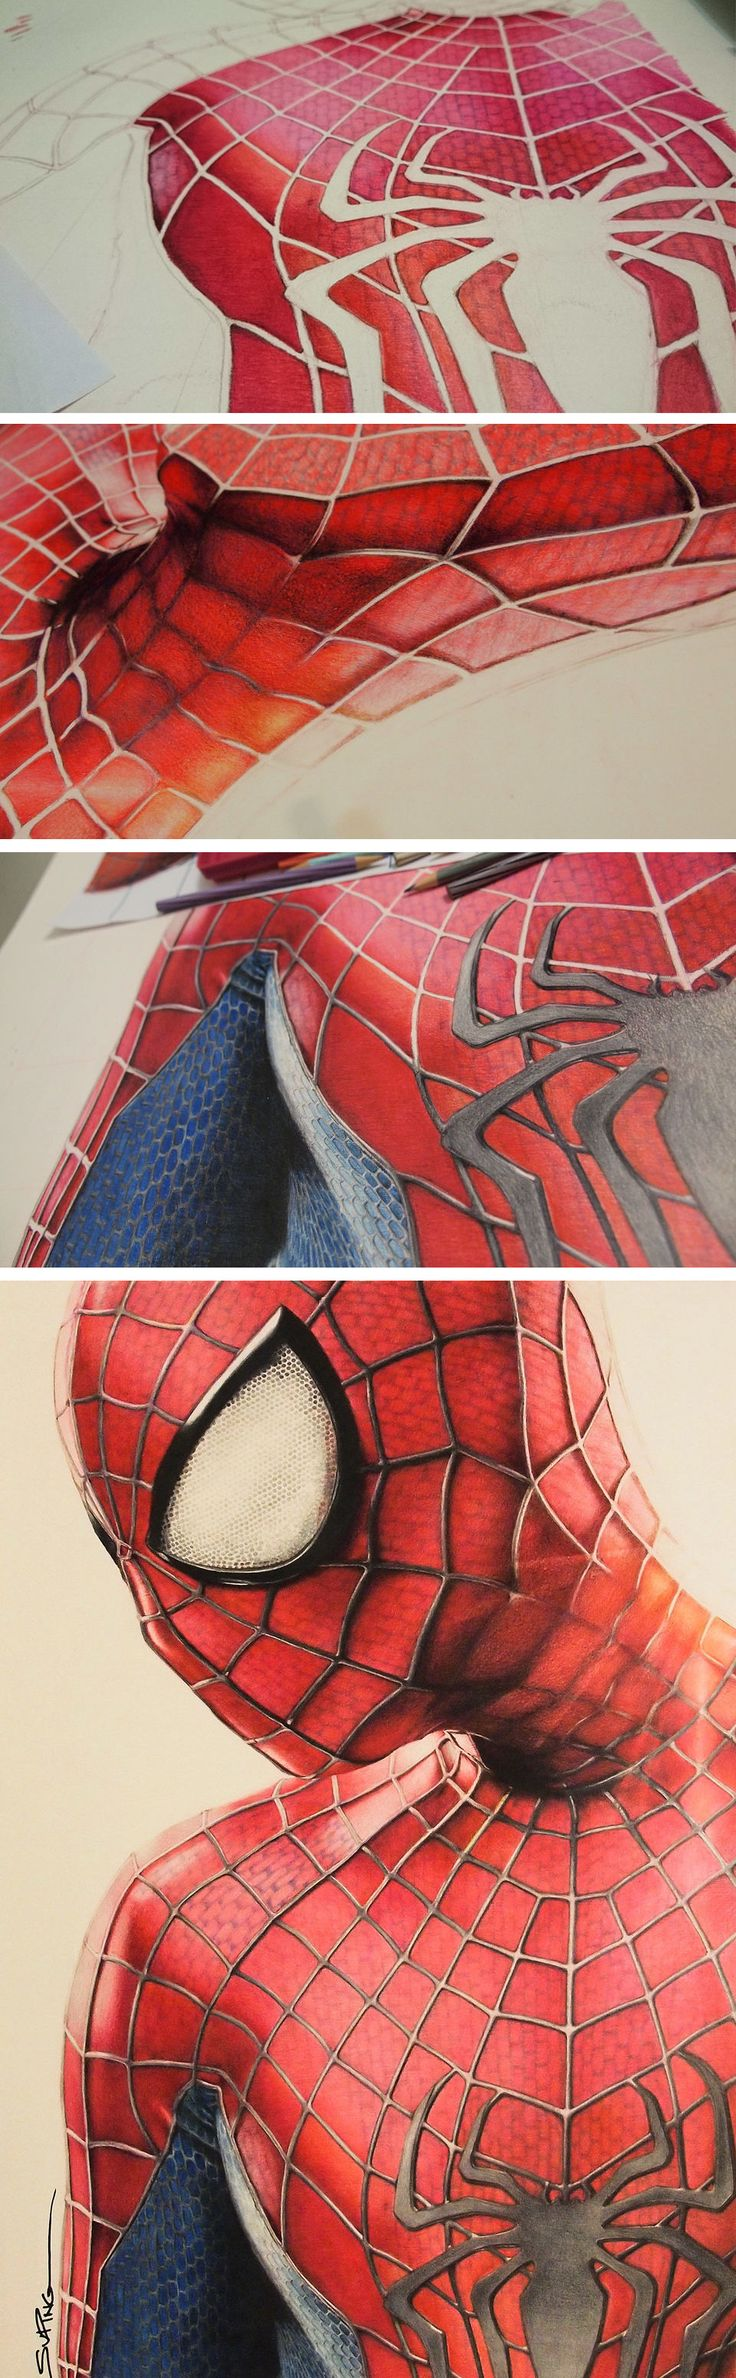 Colored pencil Spider-Man by Su Ping Ong | moviepilot.com